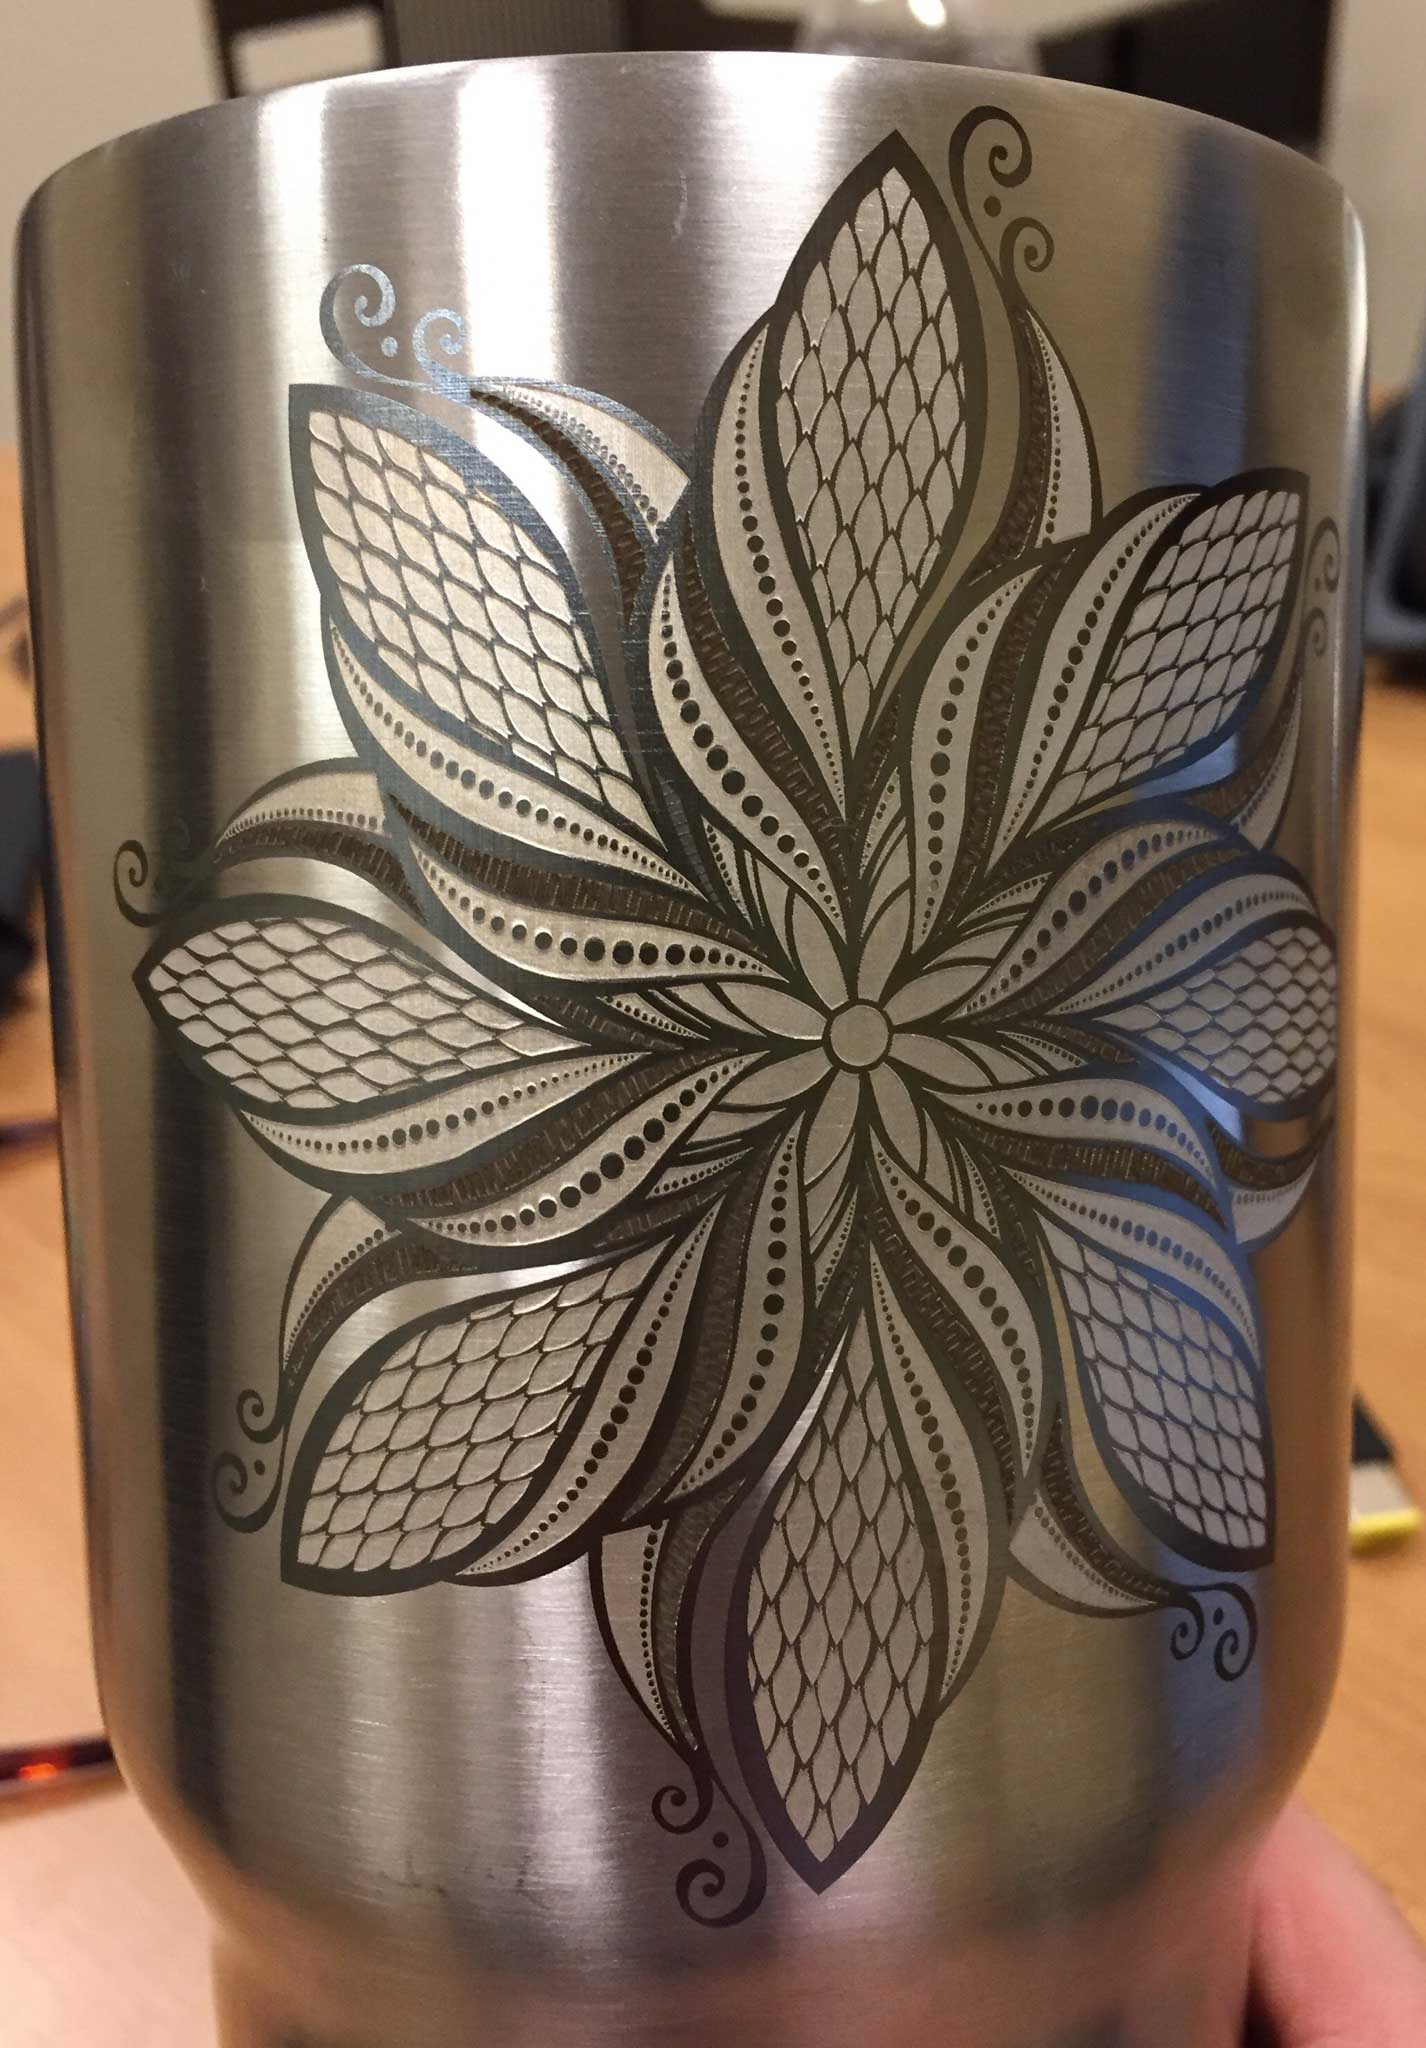 Laser Engraving on Stainless Steel Yeti Cup